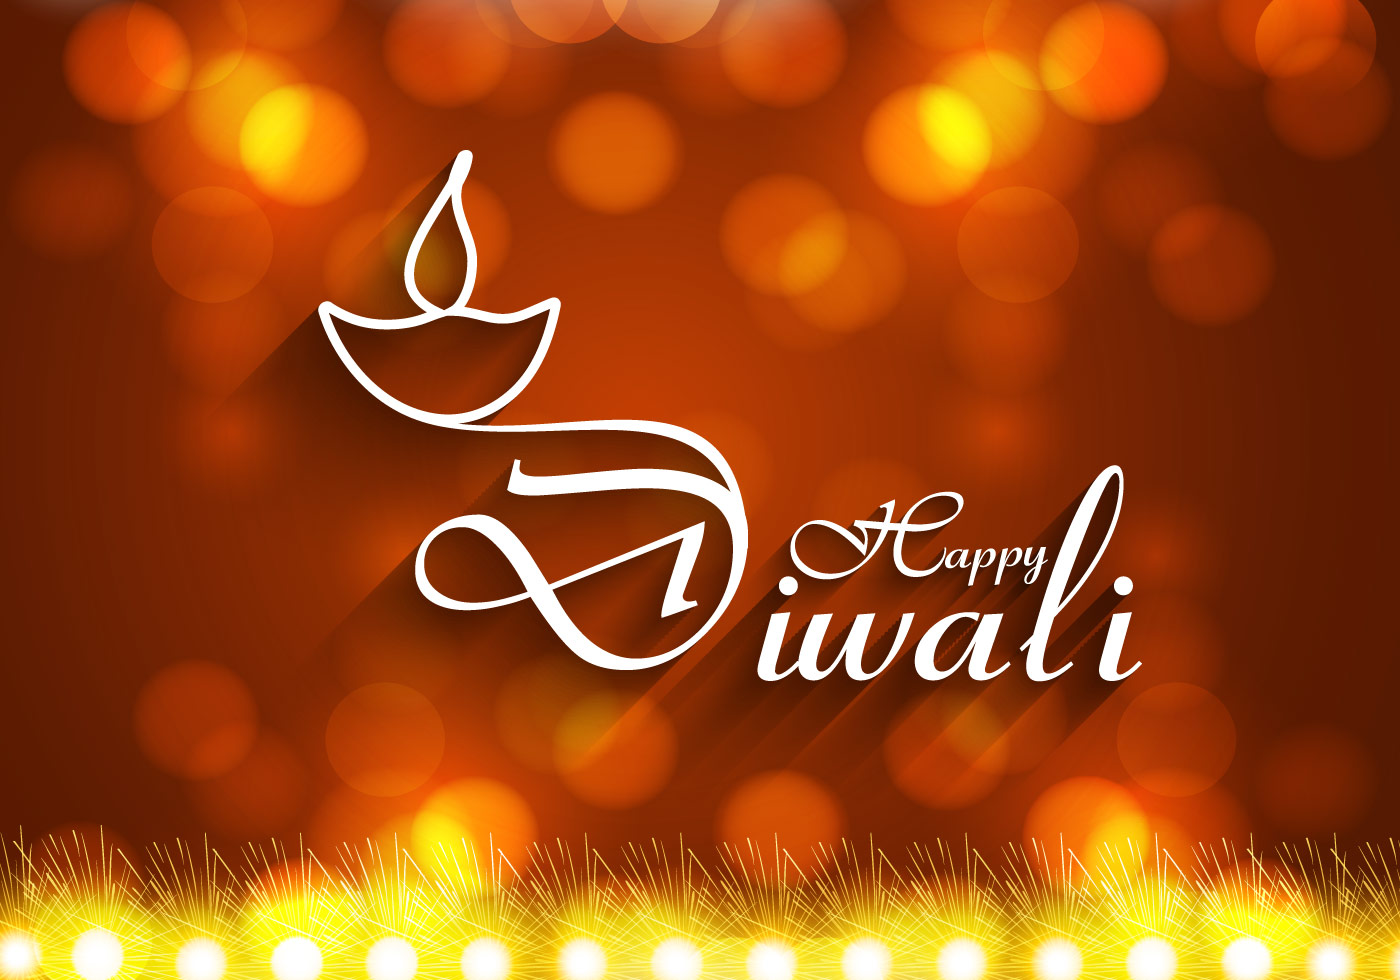 Happy Diwali With Oil Lamp On Greeting Card Download Free Vector